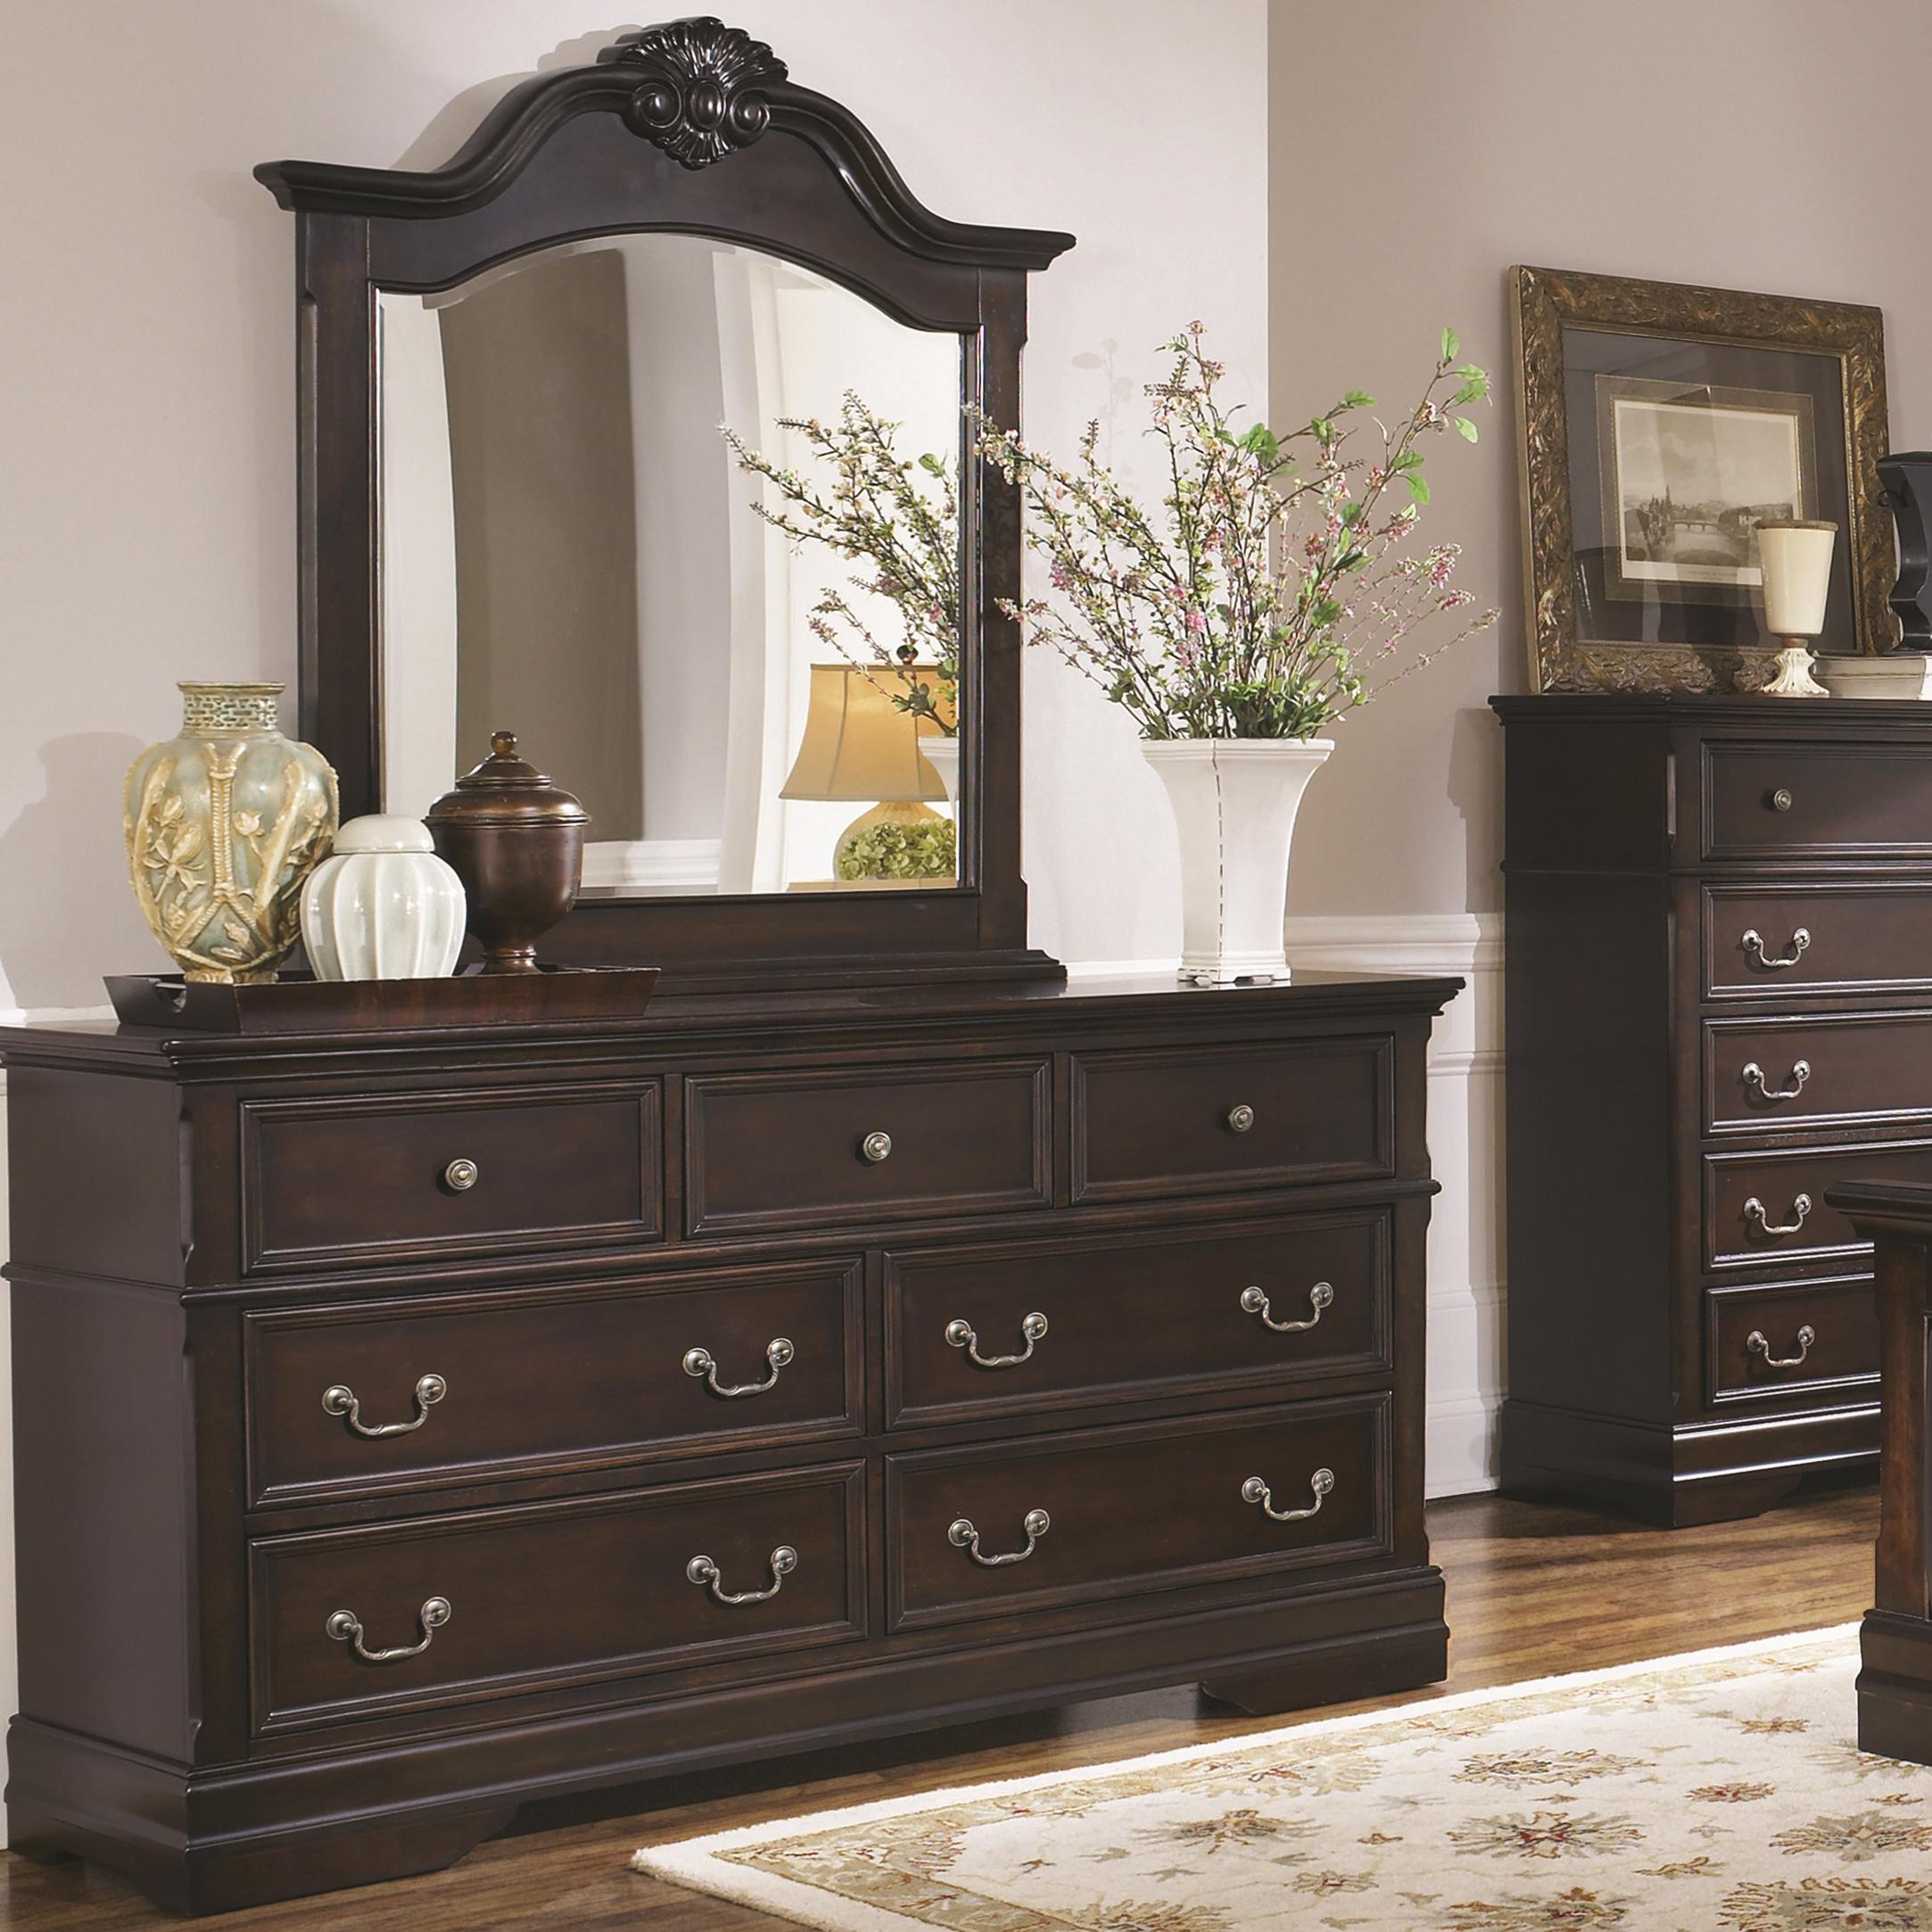 Cambridge Dresser and Mirror Set by Coaster at Northeast Factory Direct